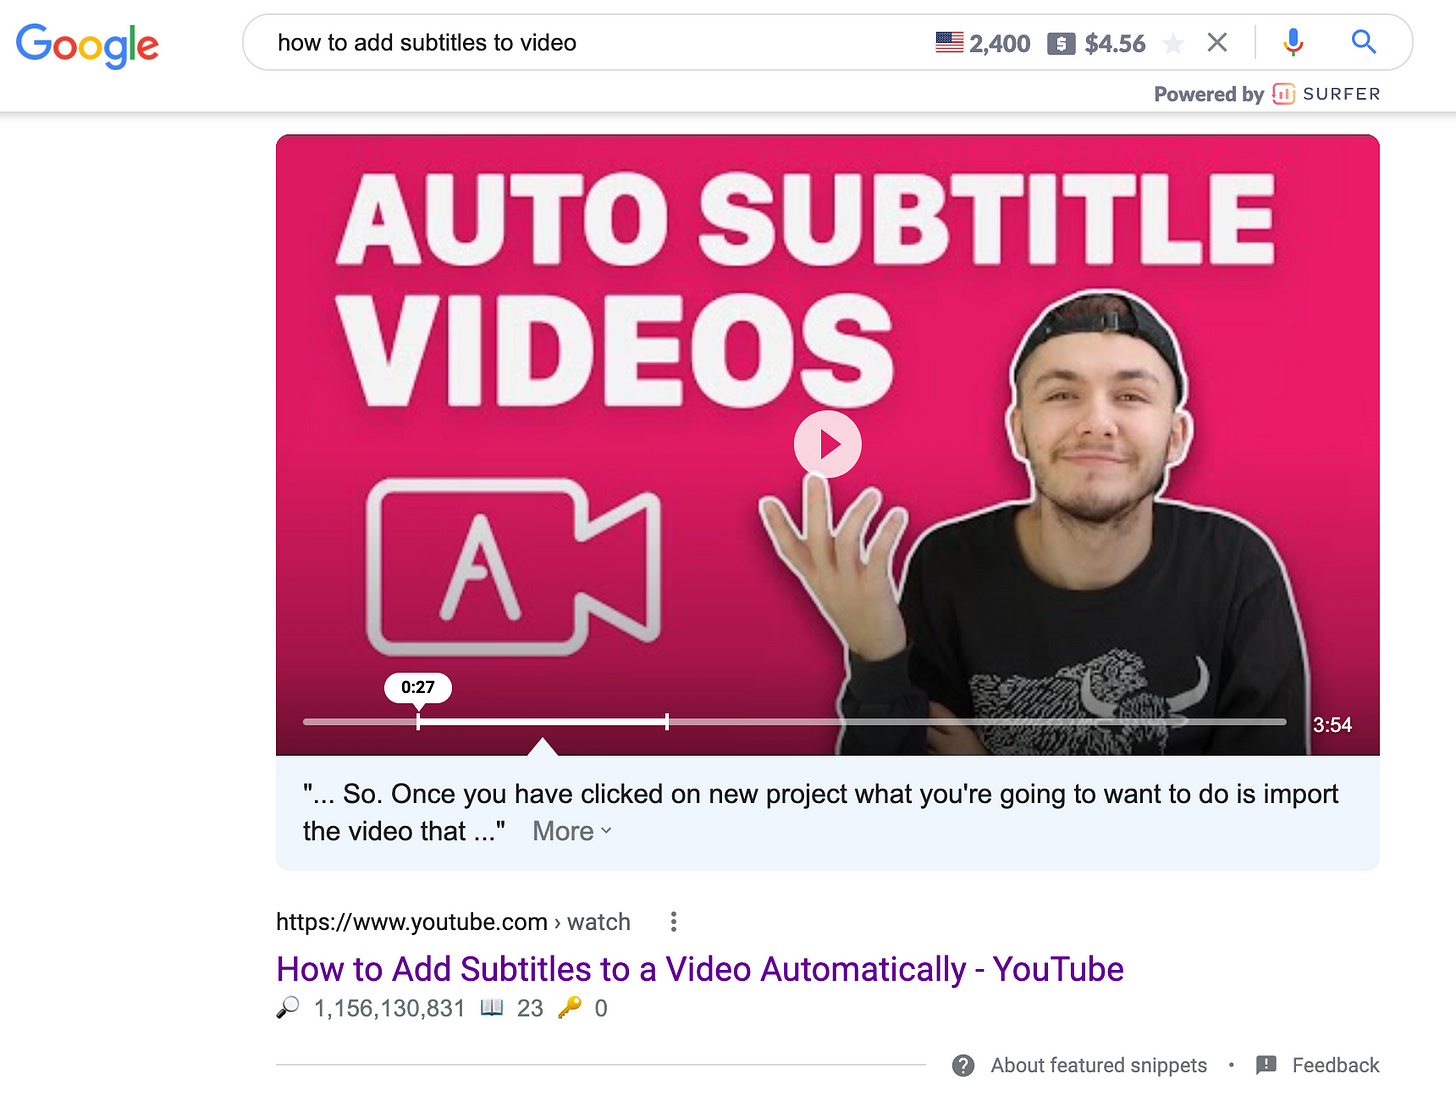 youtube video that ranks in search engine result as the featured video